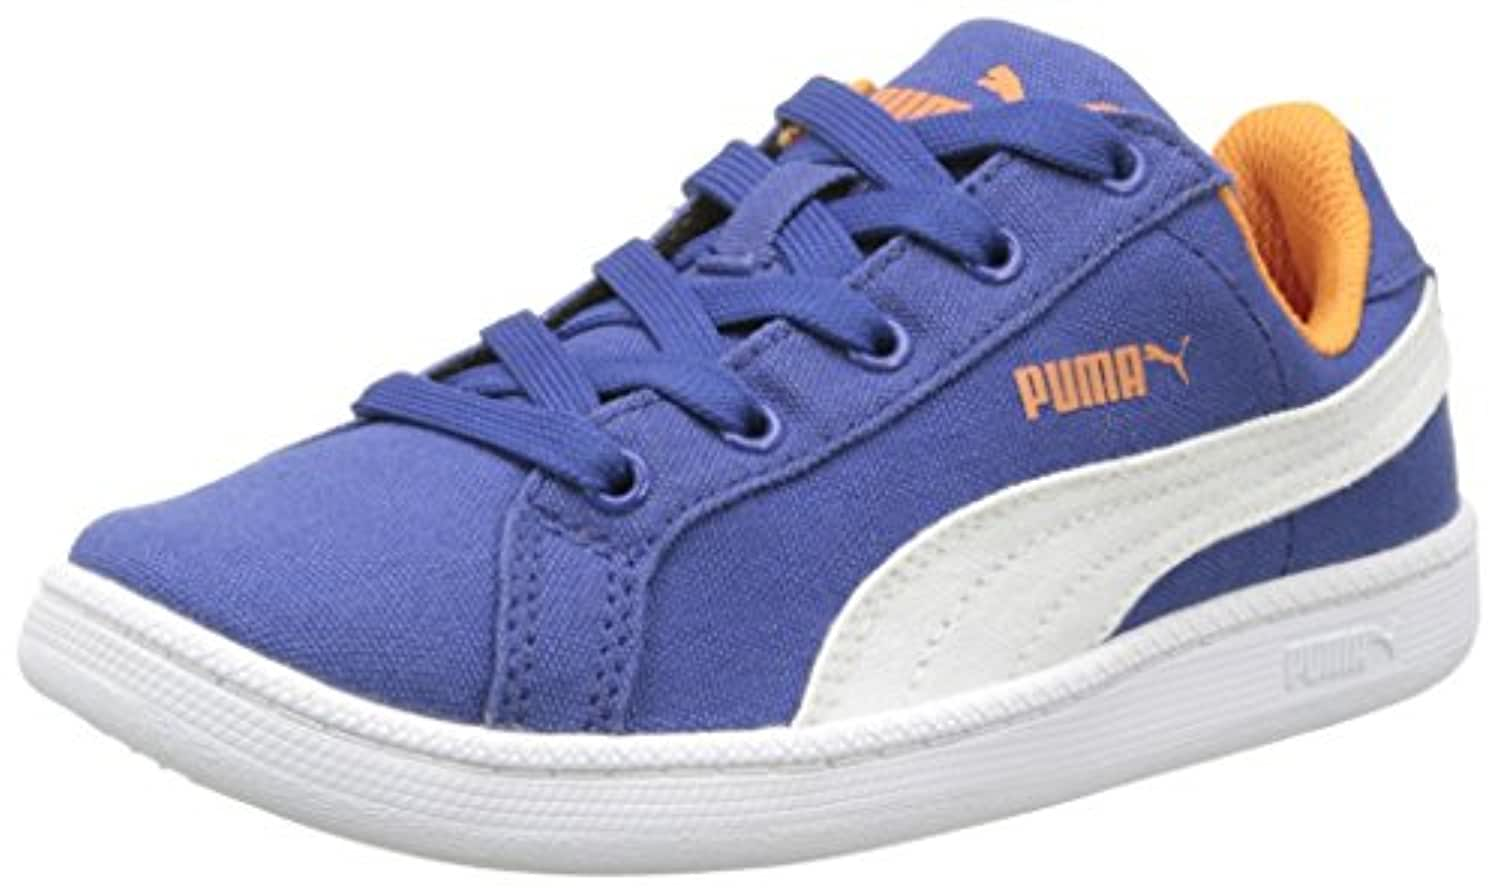 Puma Boys' Smash Fun Cv Trainers blue Size: 1 UK